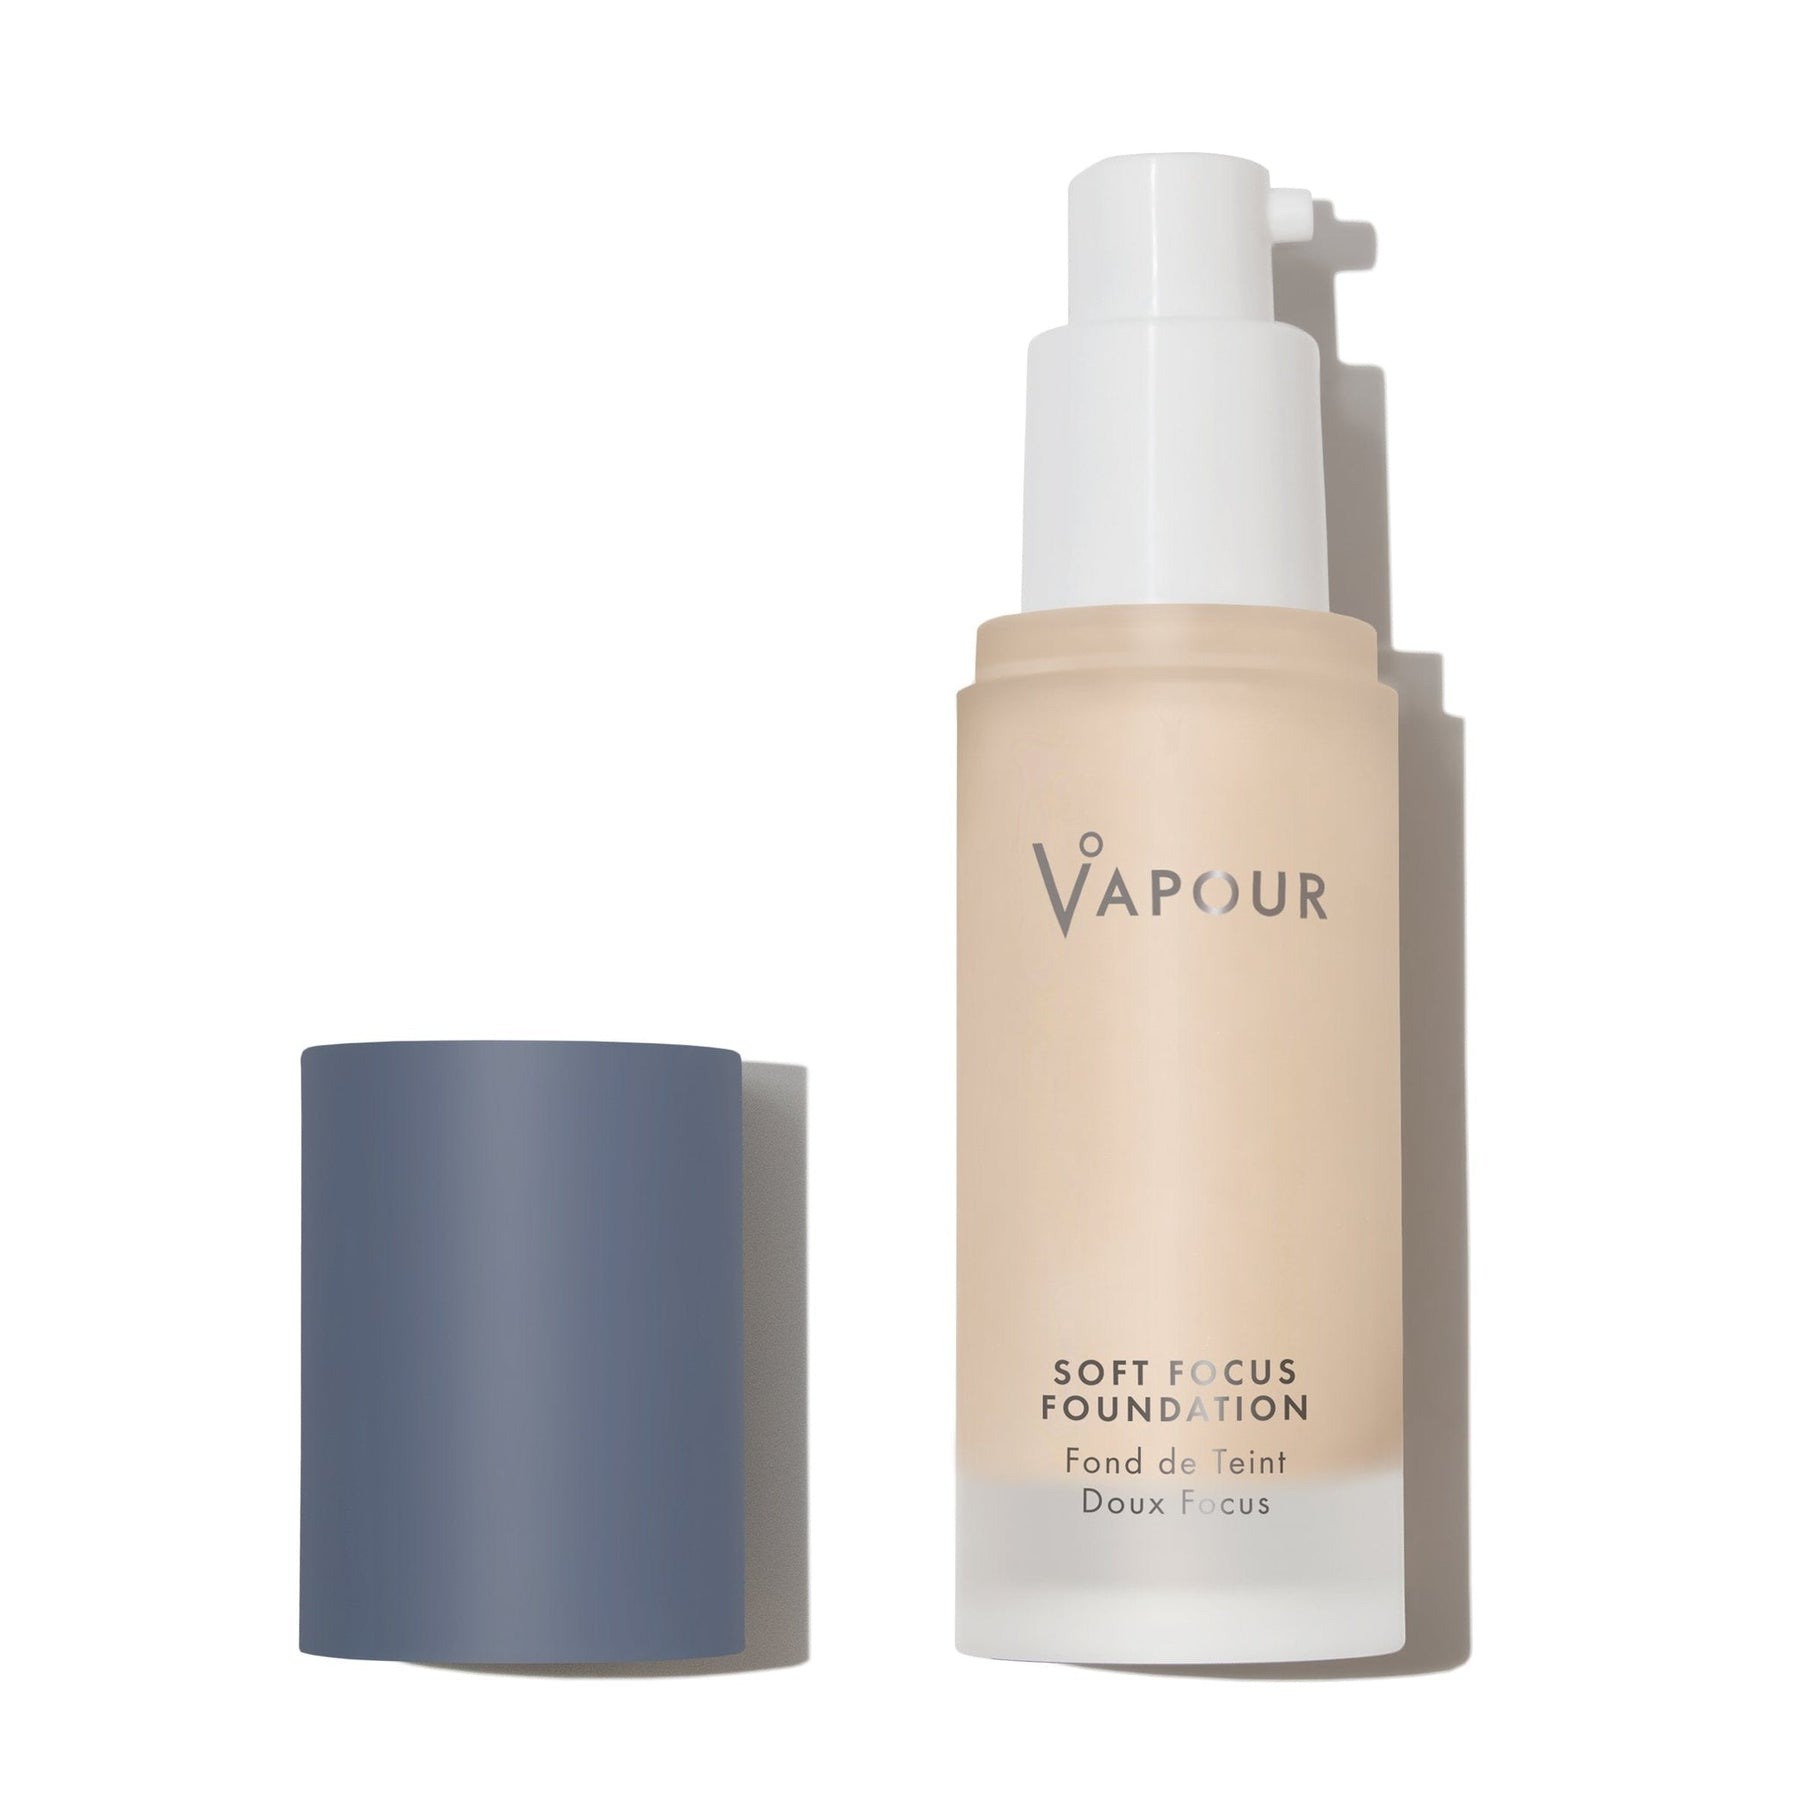 Vapour - Soft Focus Foundation 100S